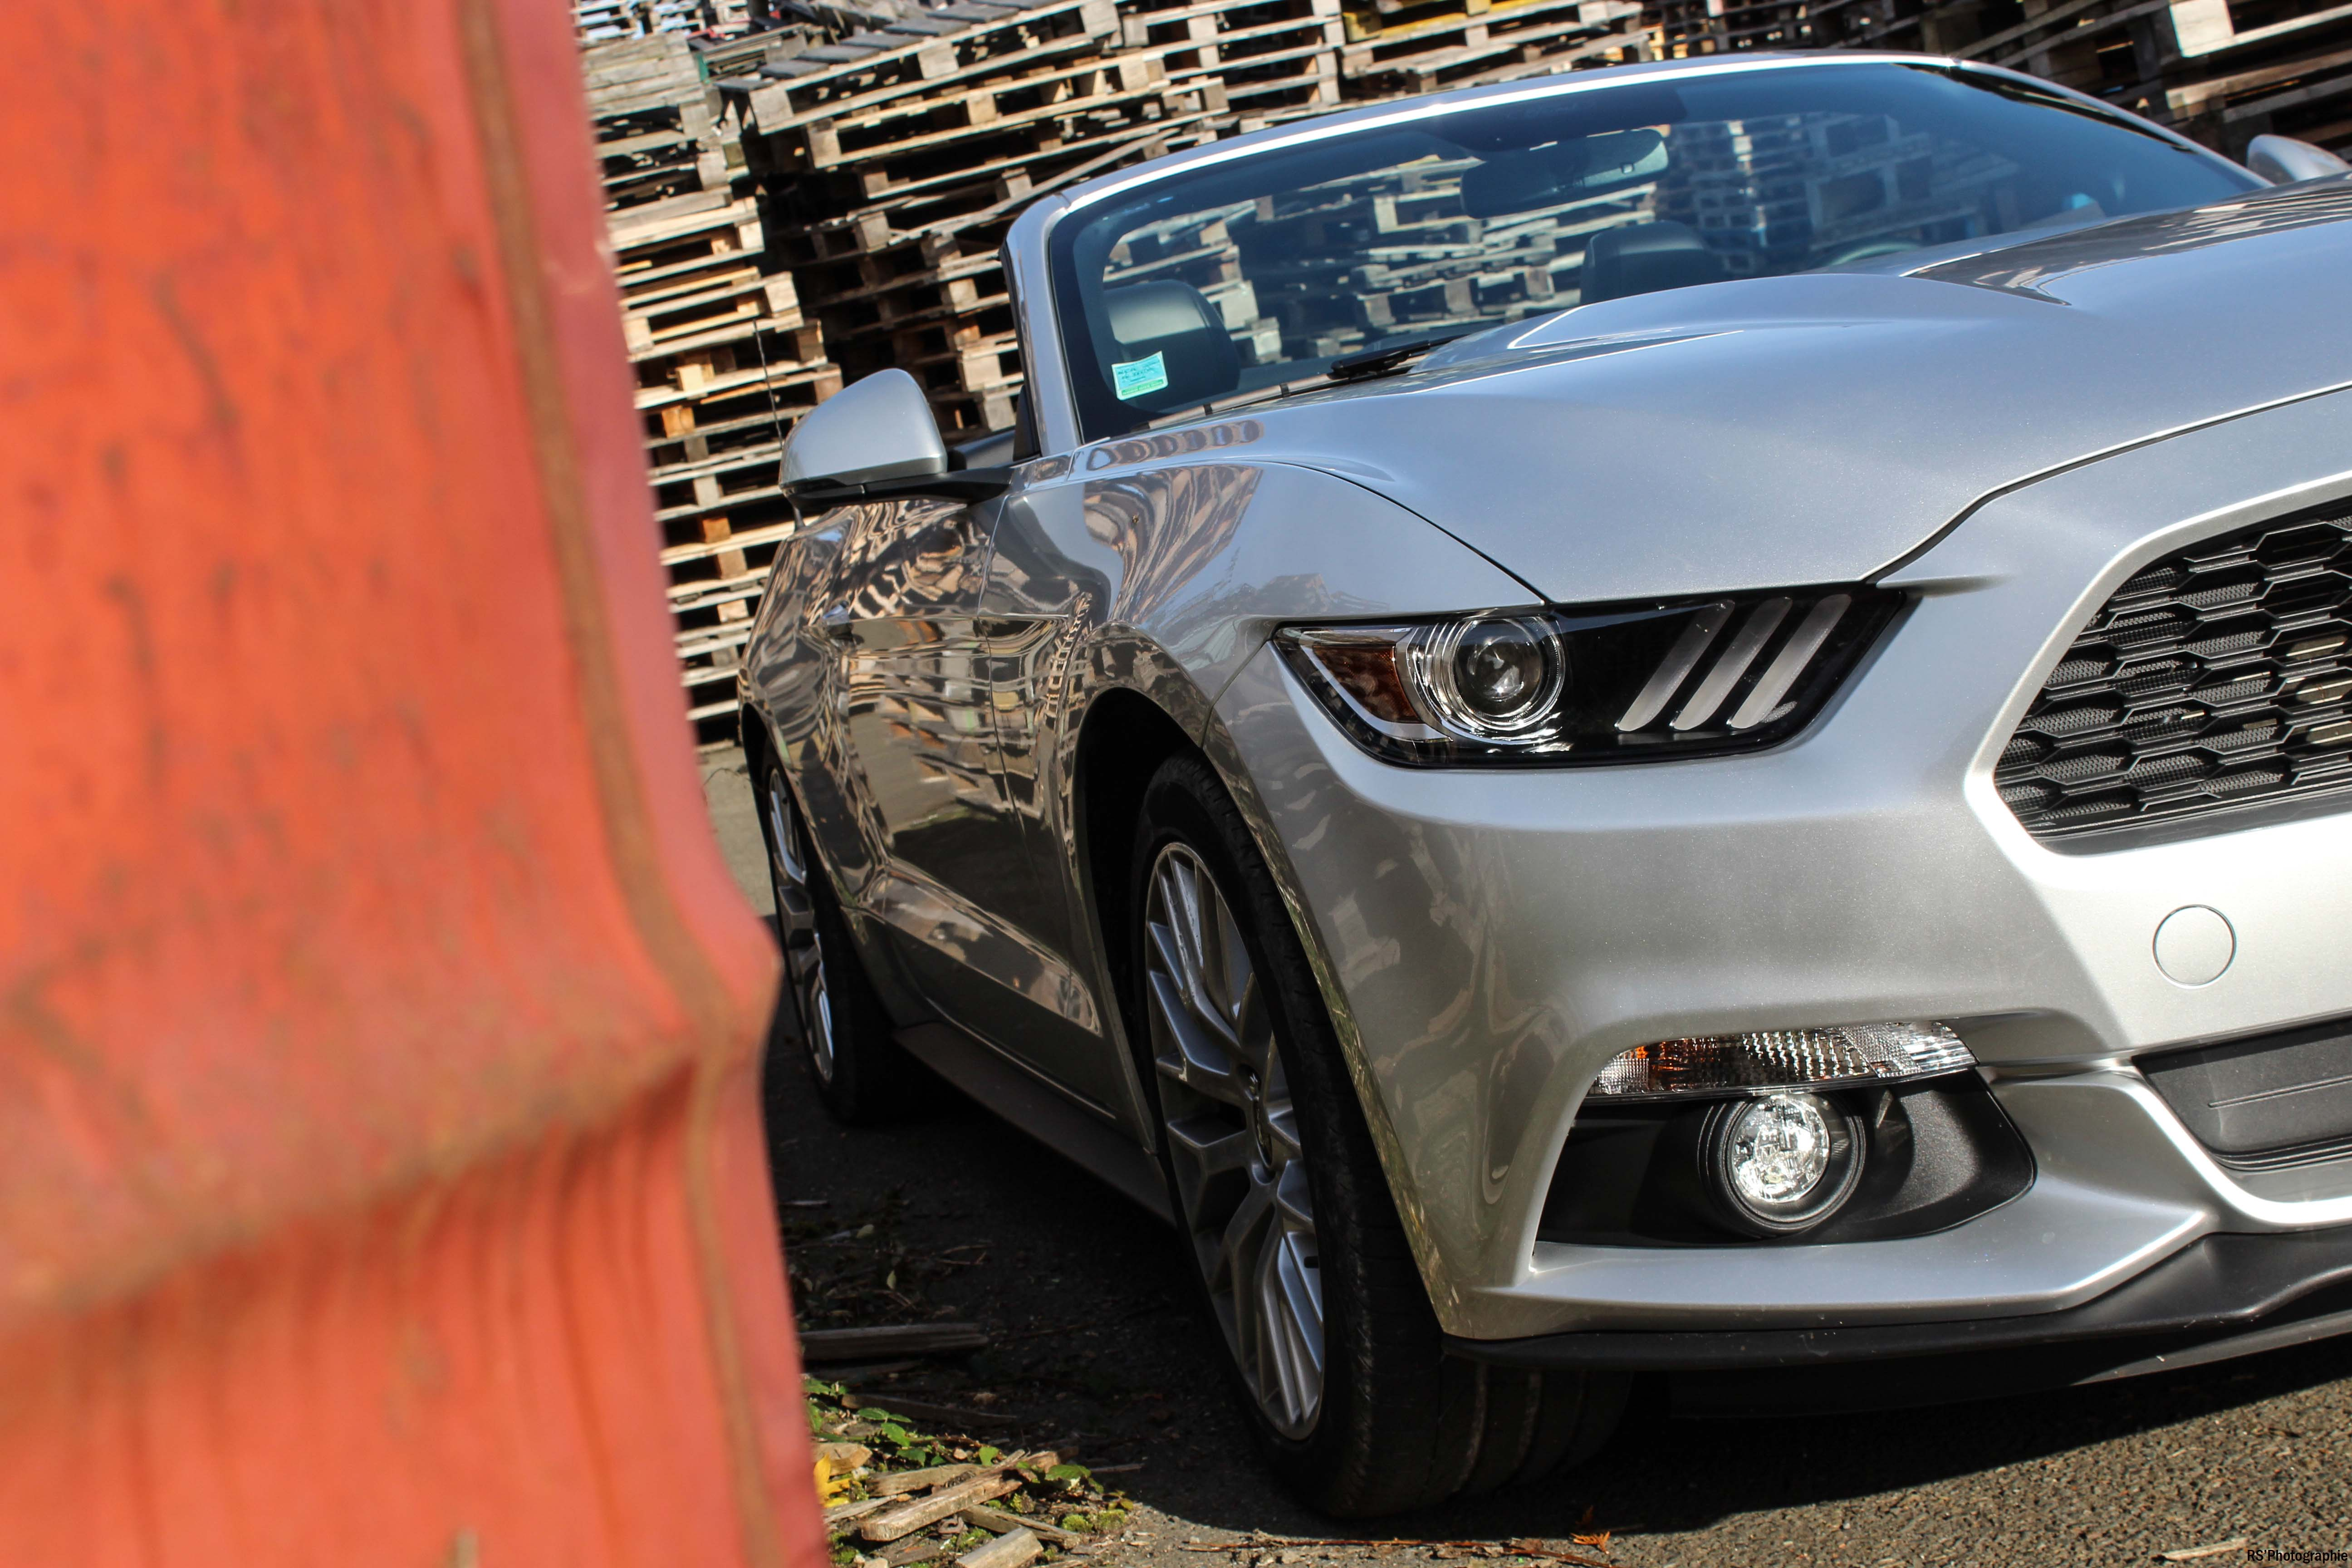 fordmustangeconvertible40-ford-mustang-convertible-ecoboost-avant-front-Arnaud Demasier-RSPhotographie